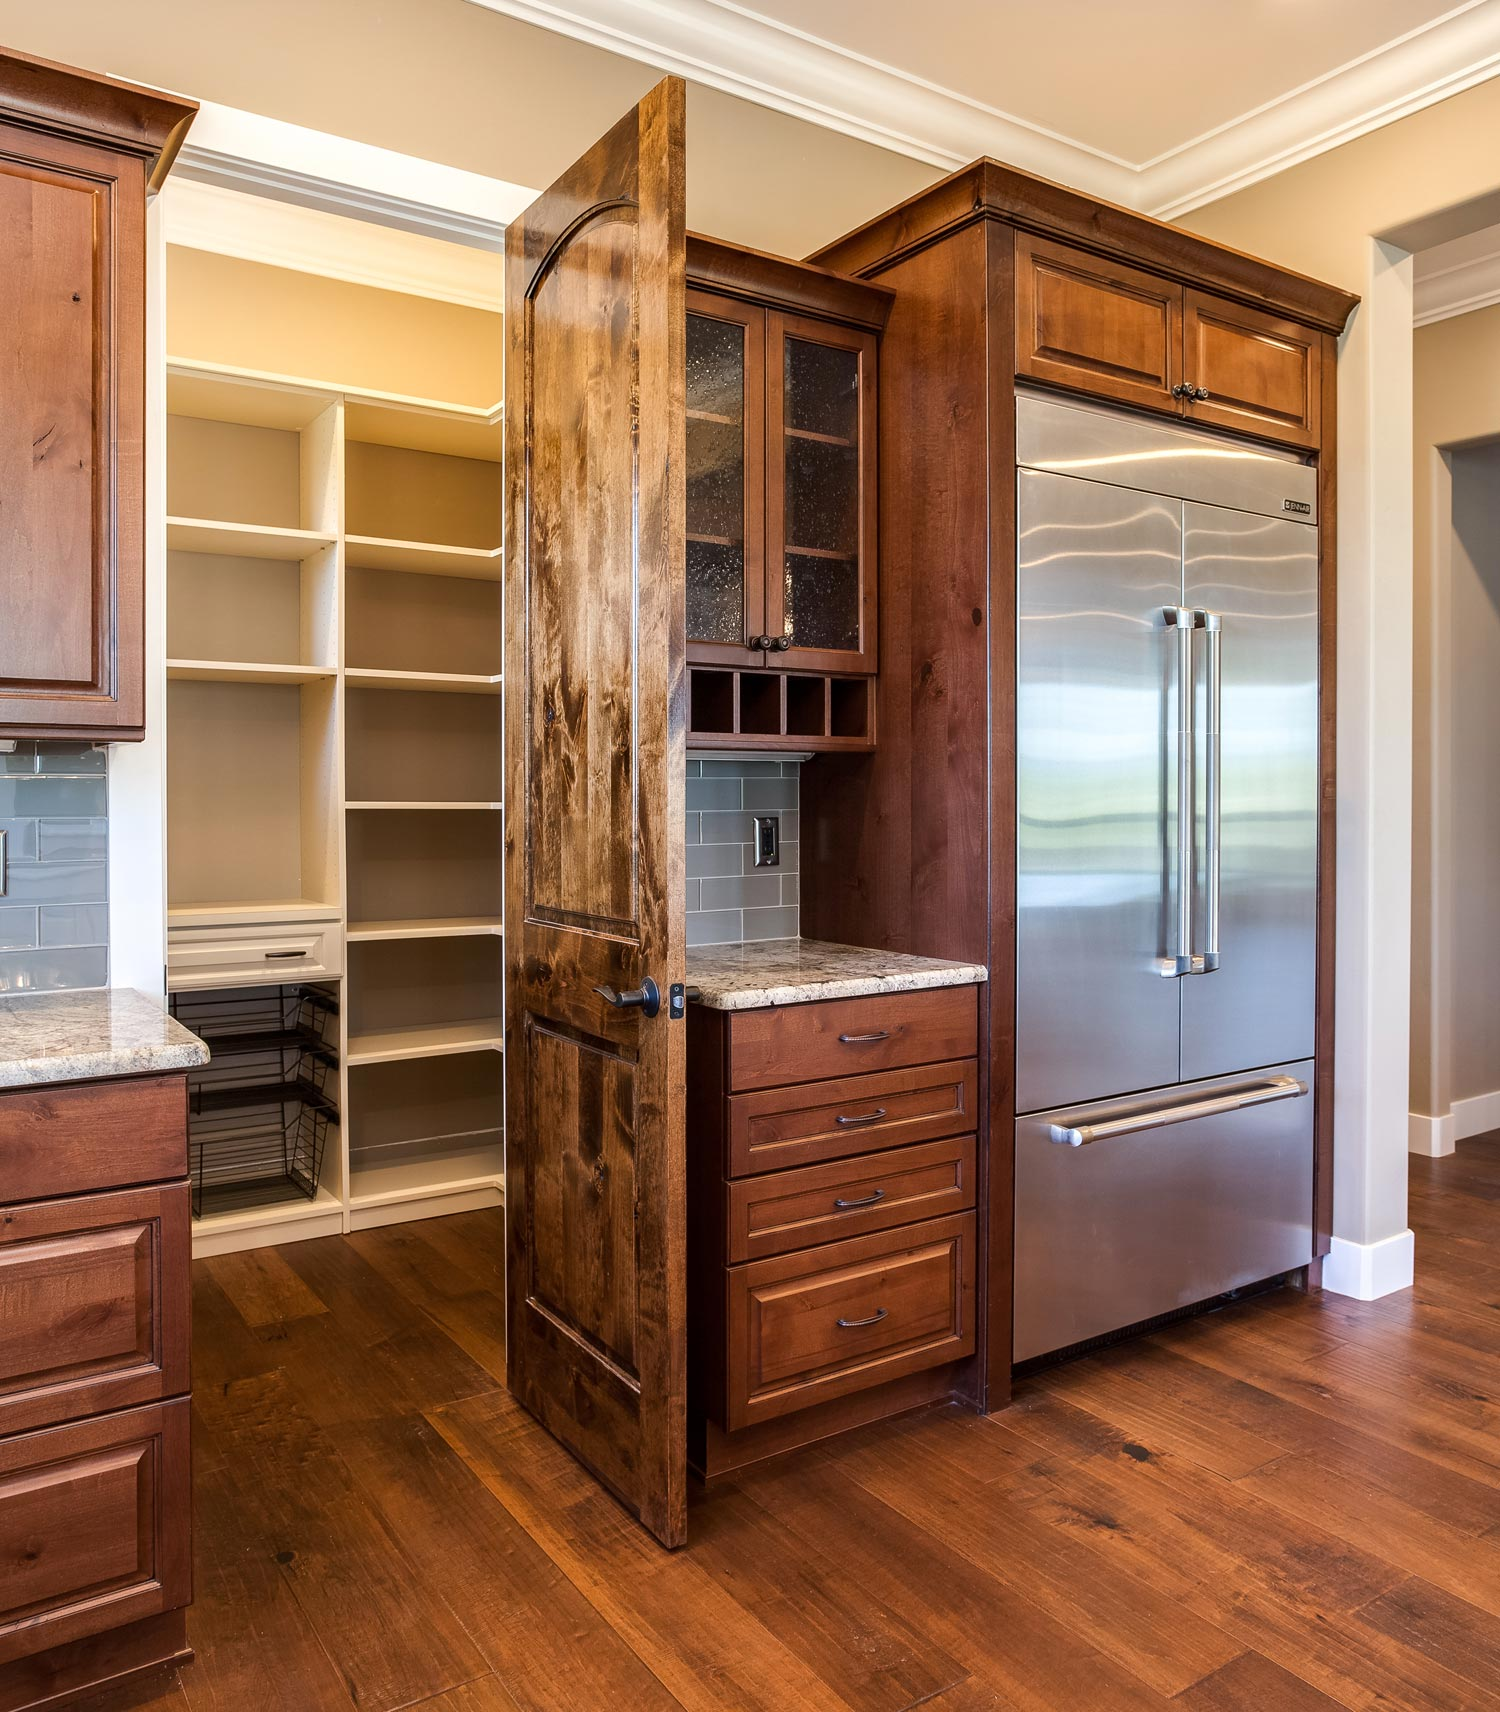 JM Kitchen and Bath & New Center Island Kitchen Design in Castle Rock - JM Kitchen and Bath